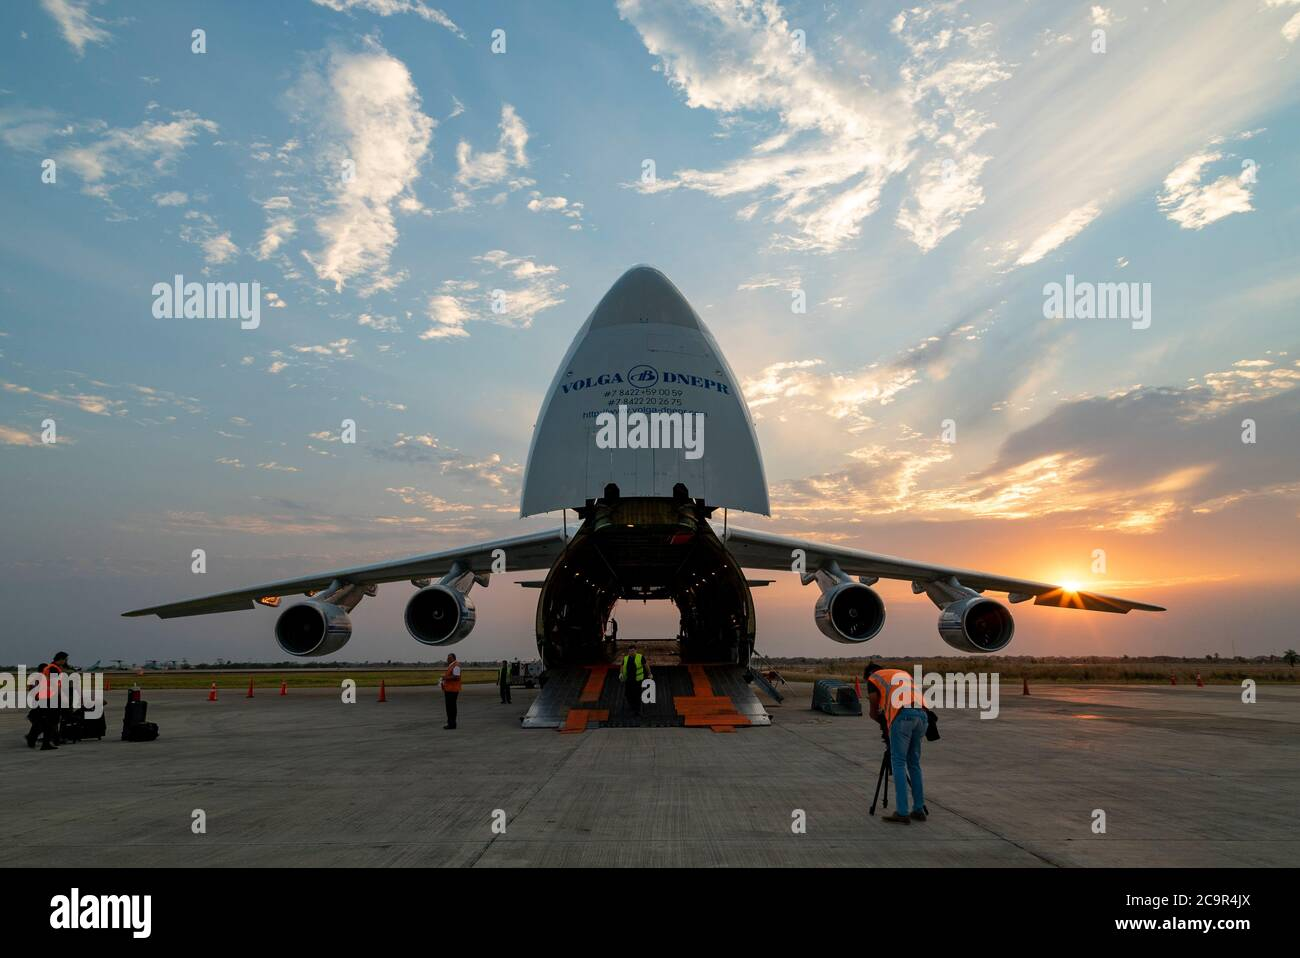 Russian Antonov-225 worlds largest cargo airplane in Bolivia, send to carry helicopters to fight the fires Stock Photo